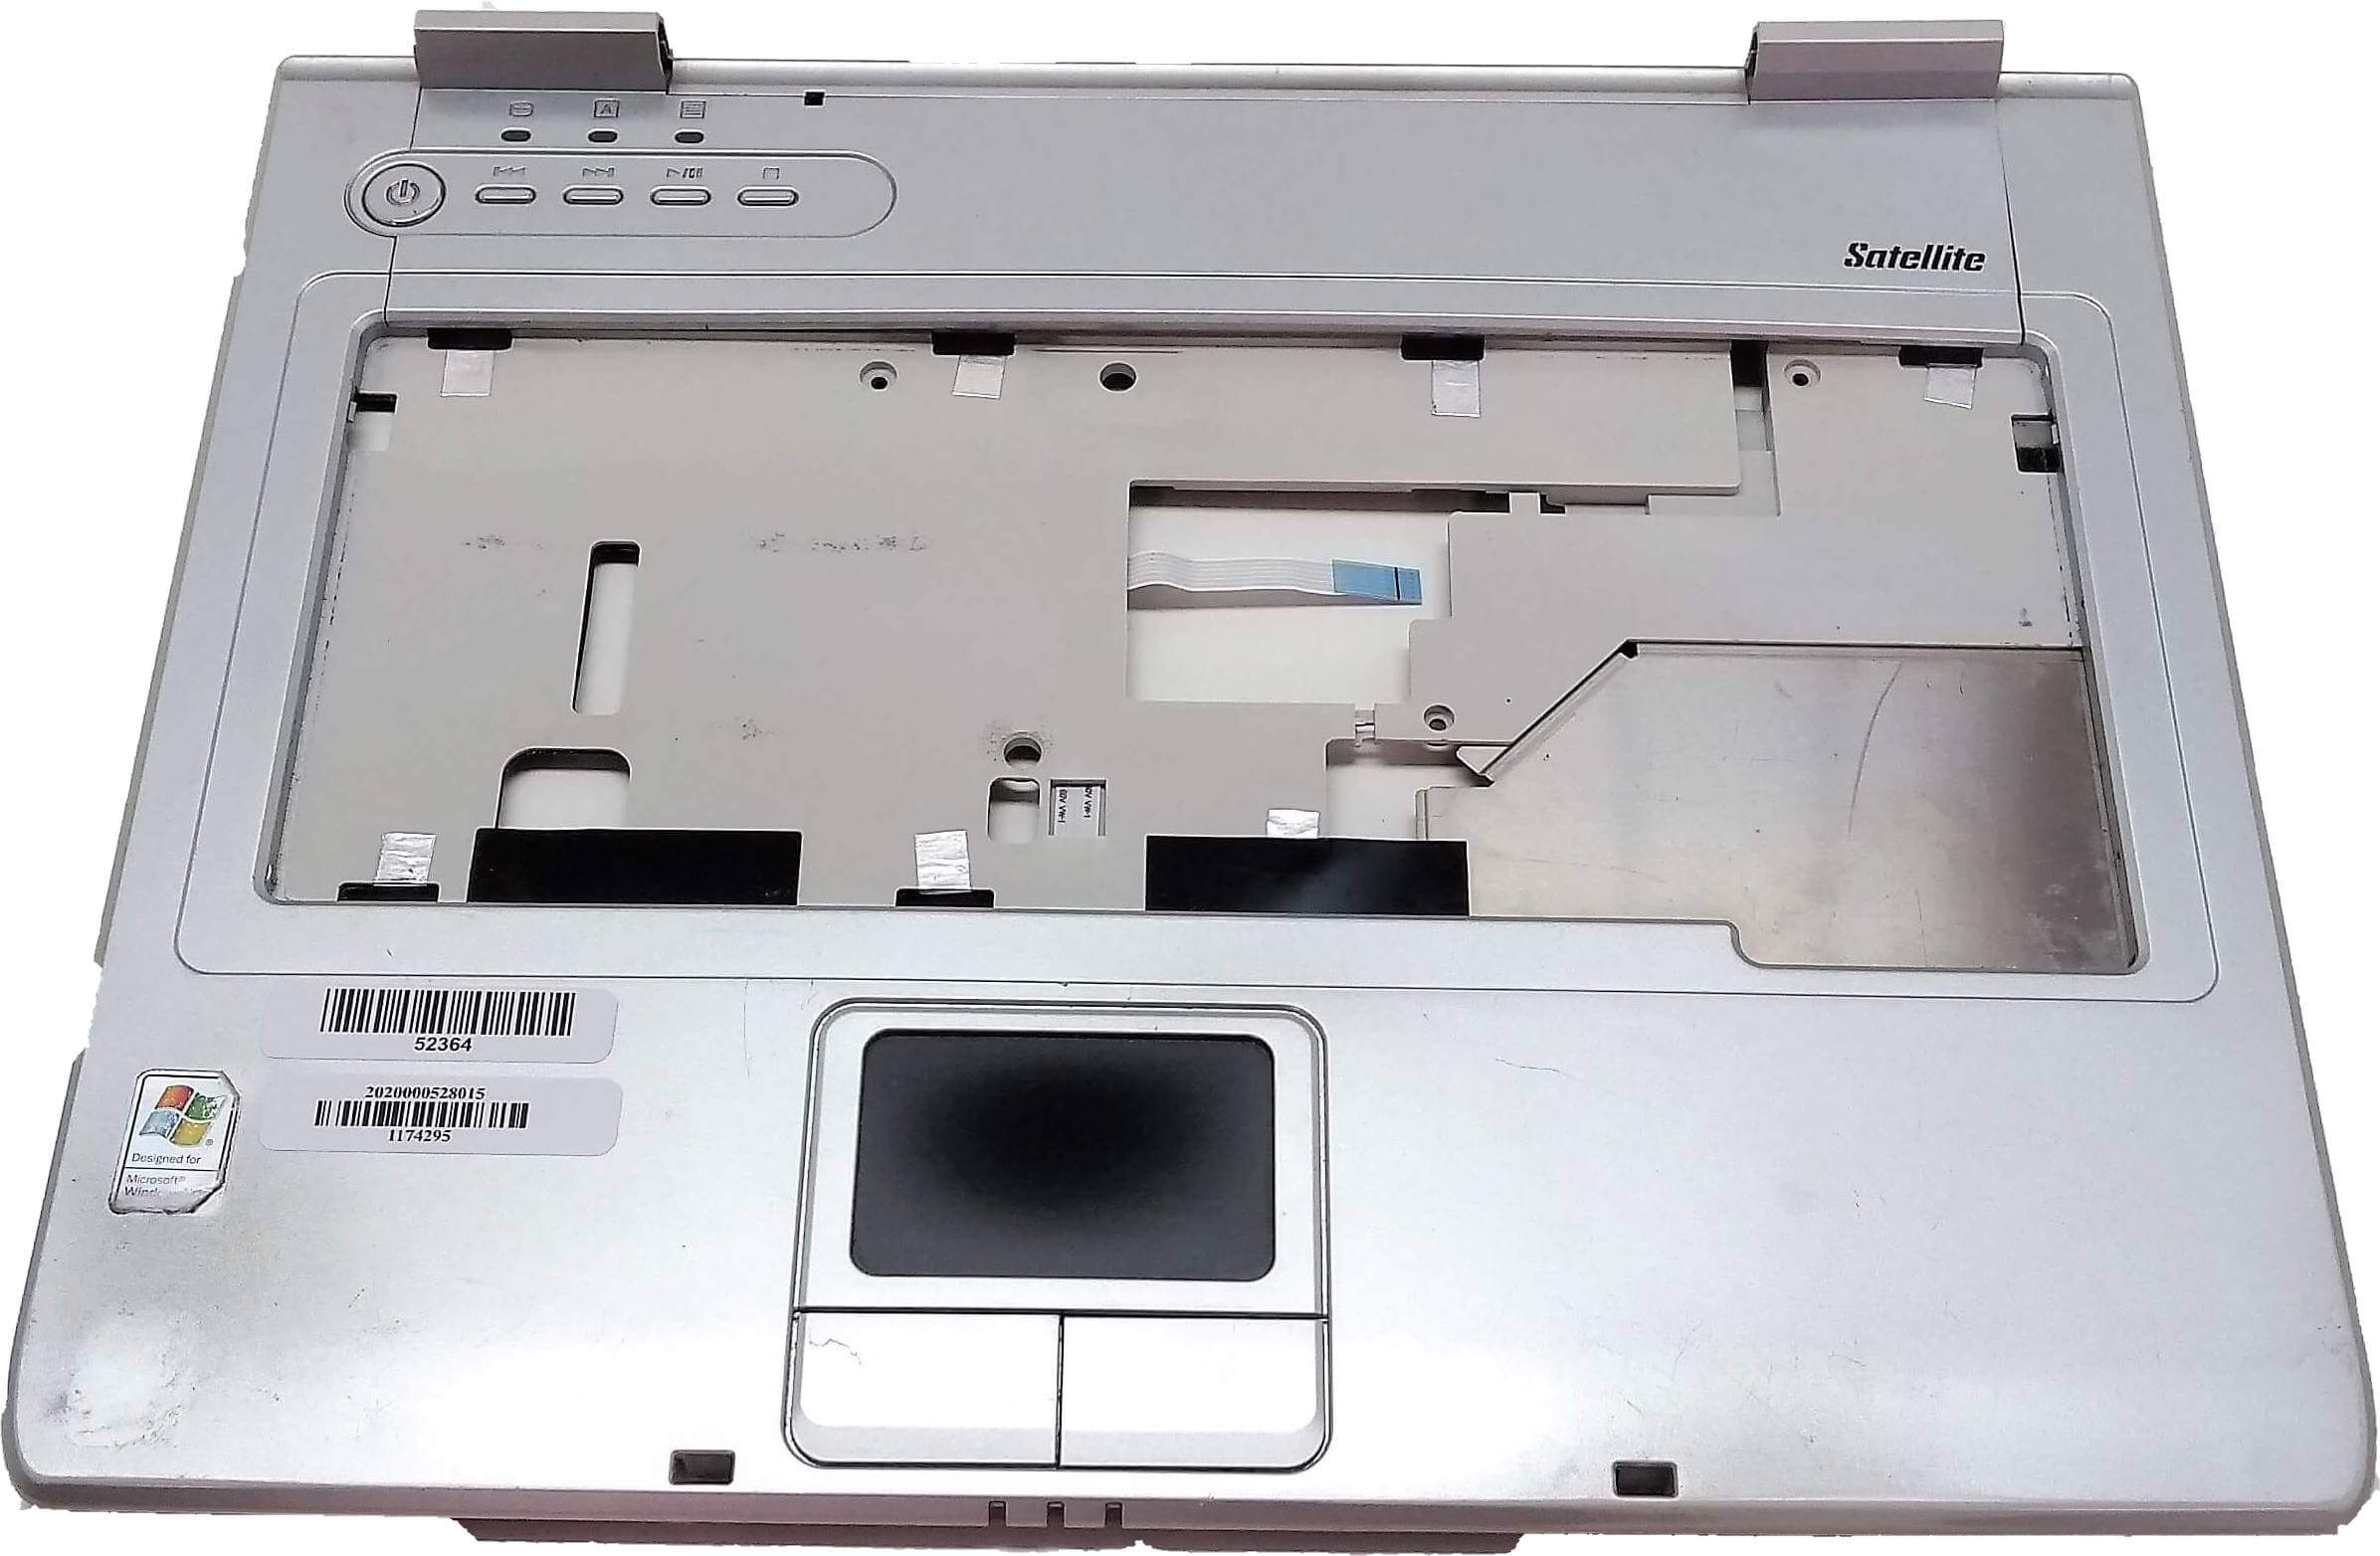 OBUDOWA DOLNA PALMREST DO LAPTOPA / TOSHIBA / 38EW5TA0I02 / SATELITE L25